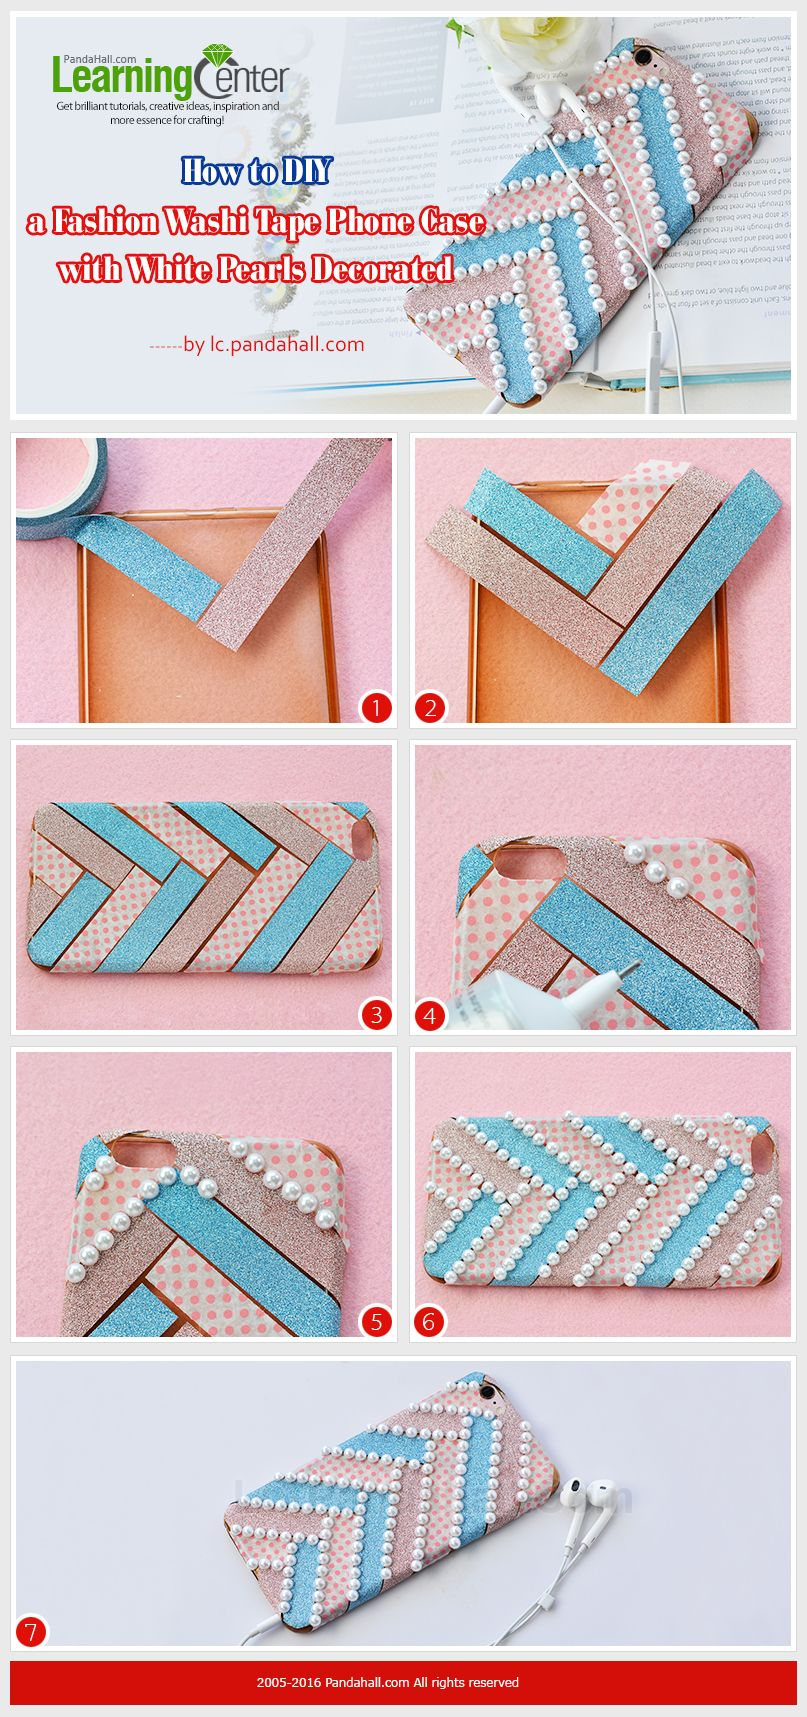 e593f9d8e37 Tutorial on How to DIY a Fashion Washi Tape Phone Case with White Pearls  Decorated from LC.Pandahall.com #pandahall